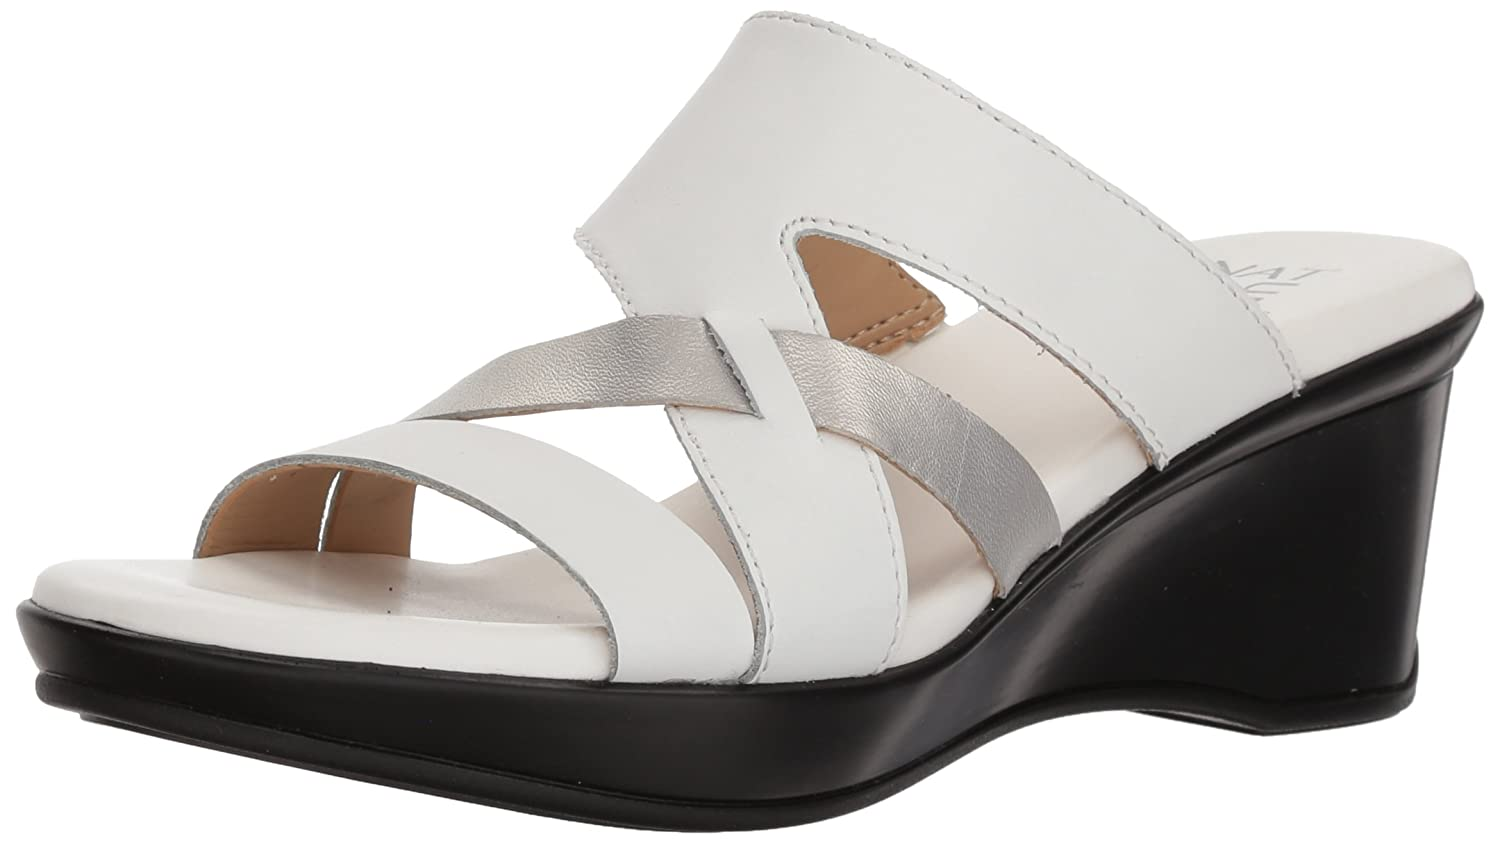 Naturalizer Women's Vivy Wedge Sandal B0787PGGTN 4 B(M) US|White